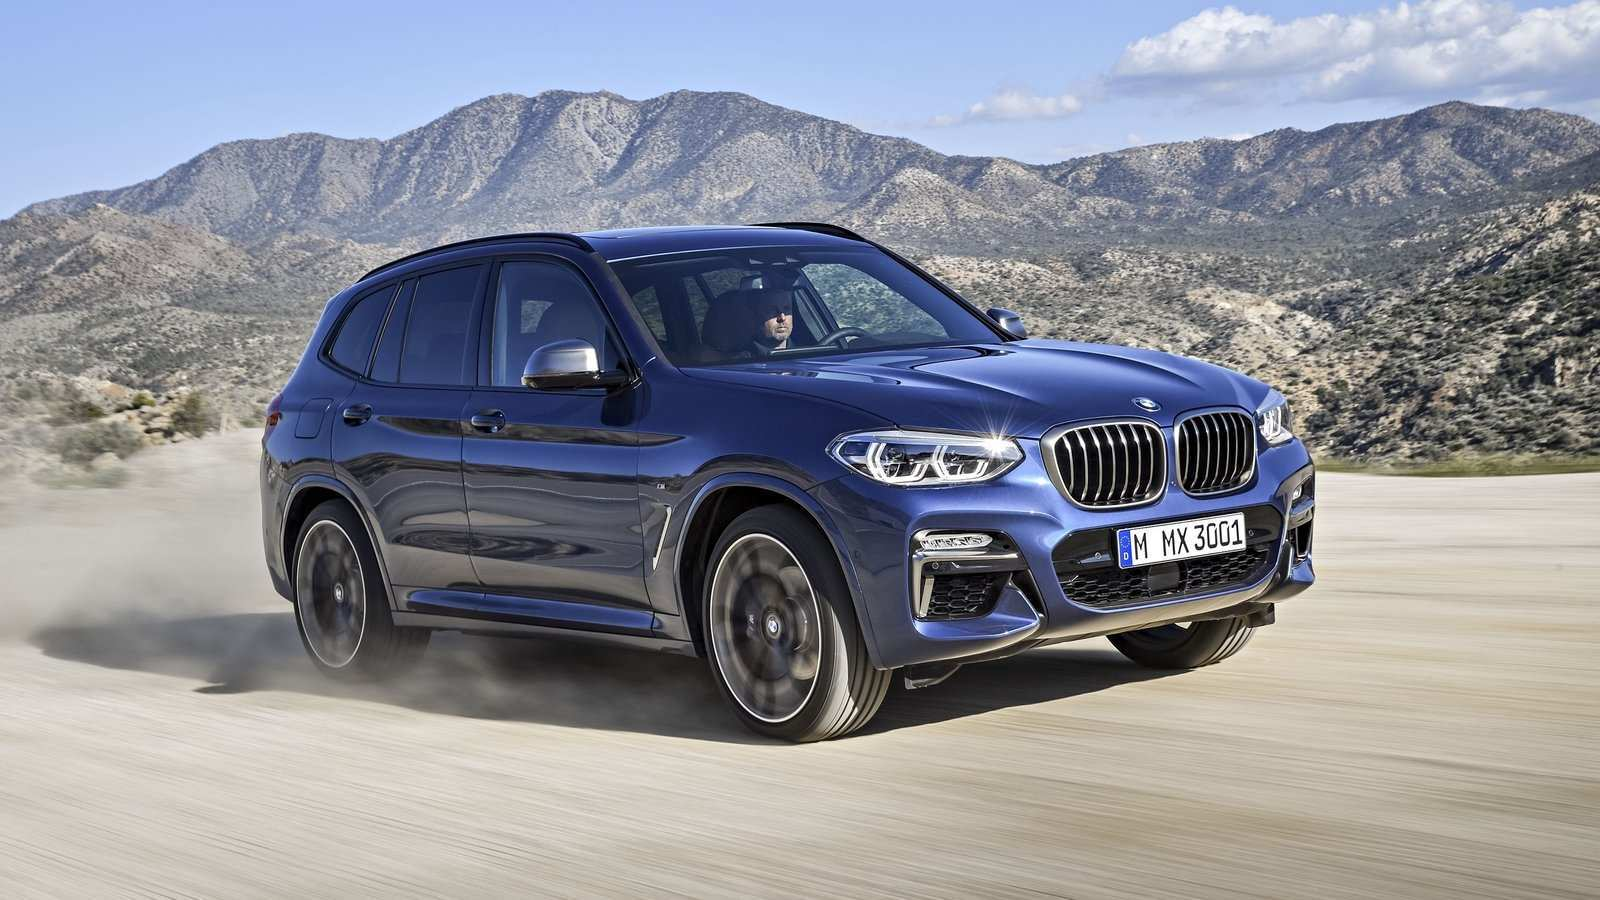 45 Great 2019 Bmw X3 Release Date Review for 2019 Bmw X3 Release Date